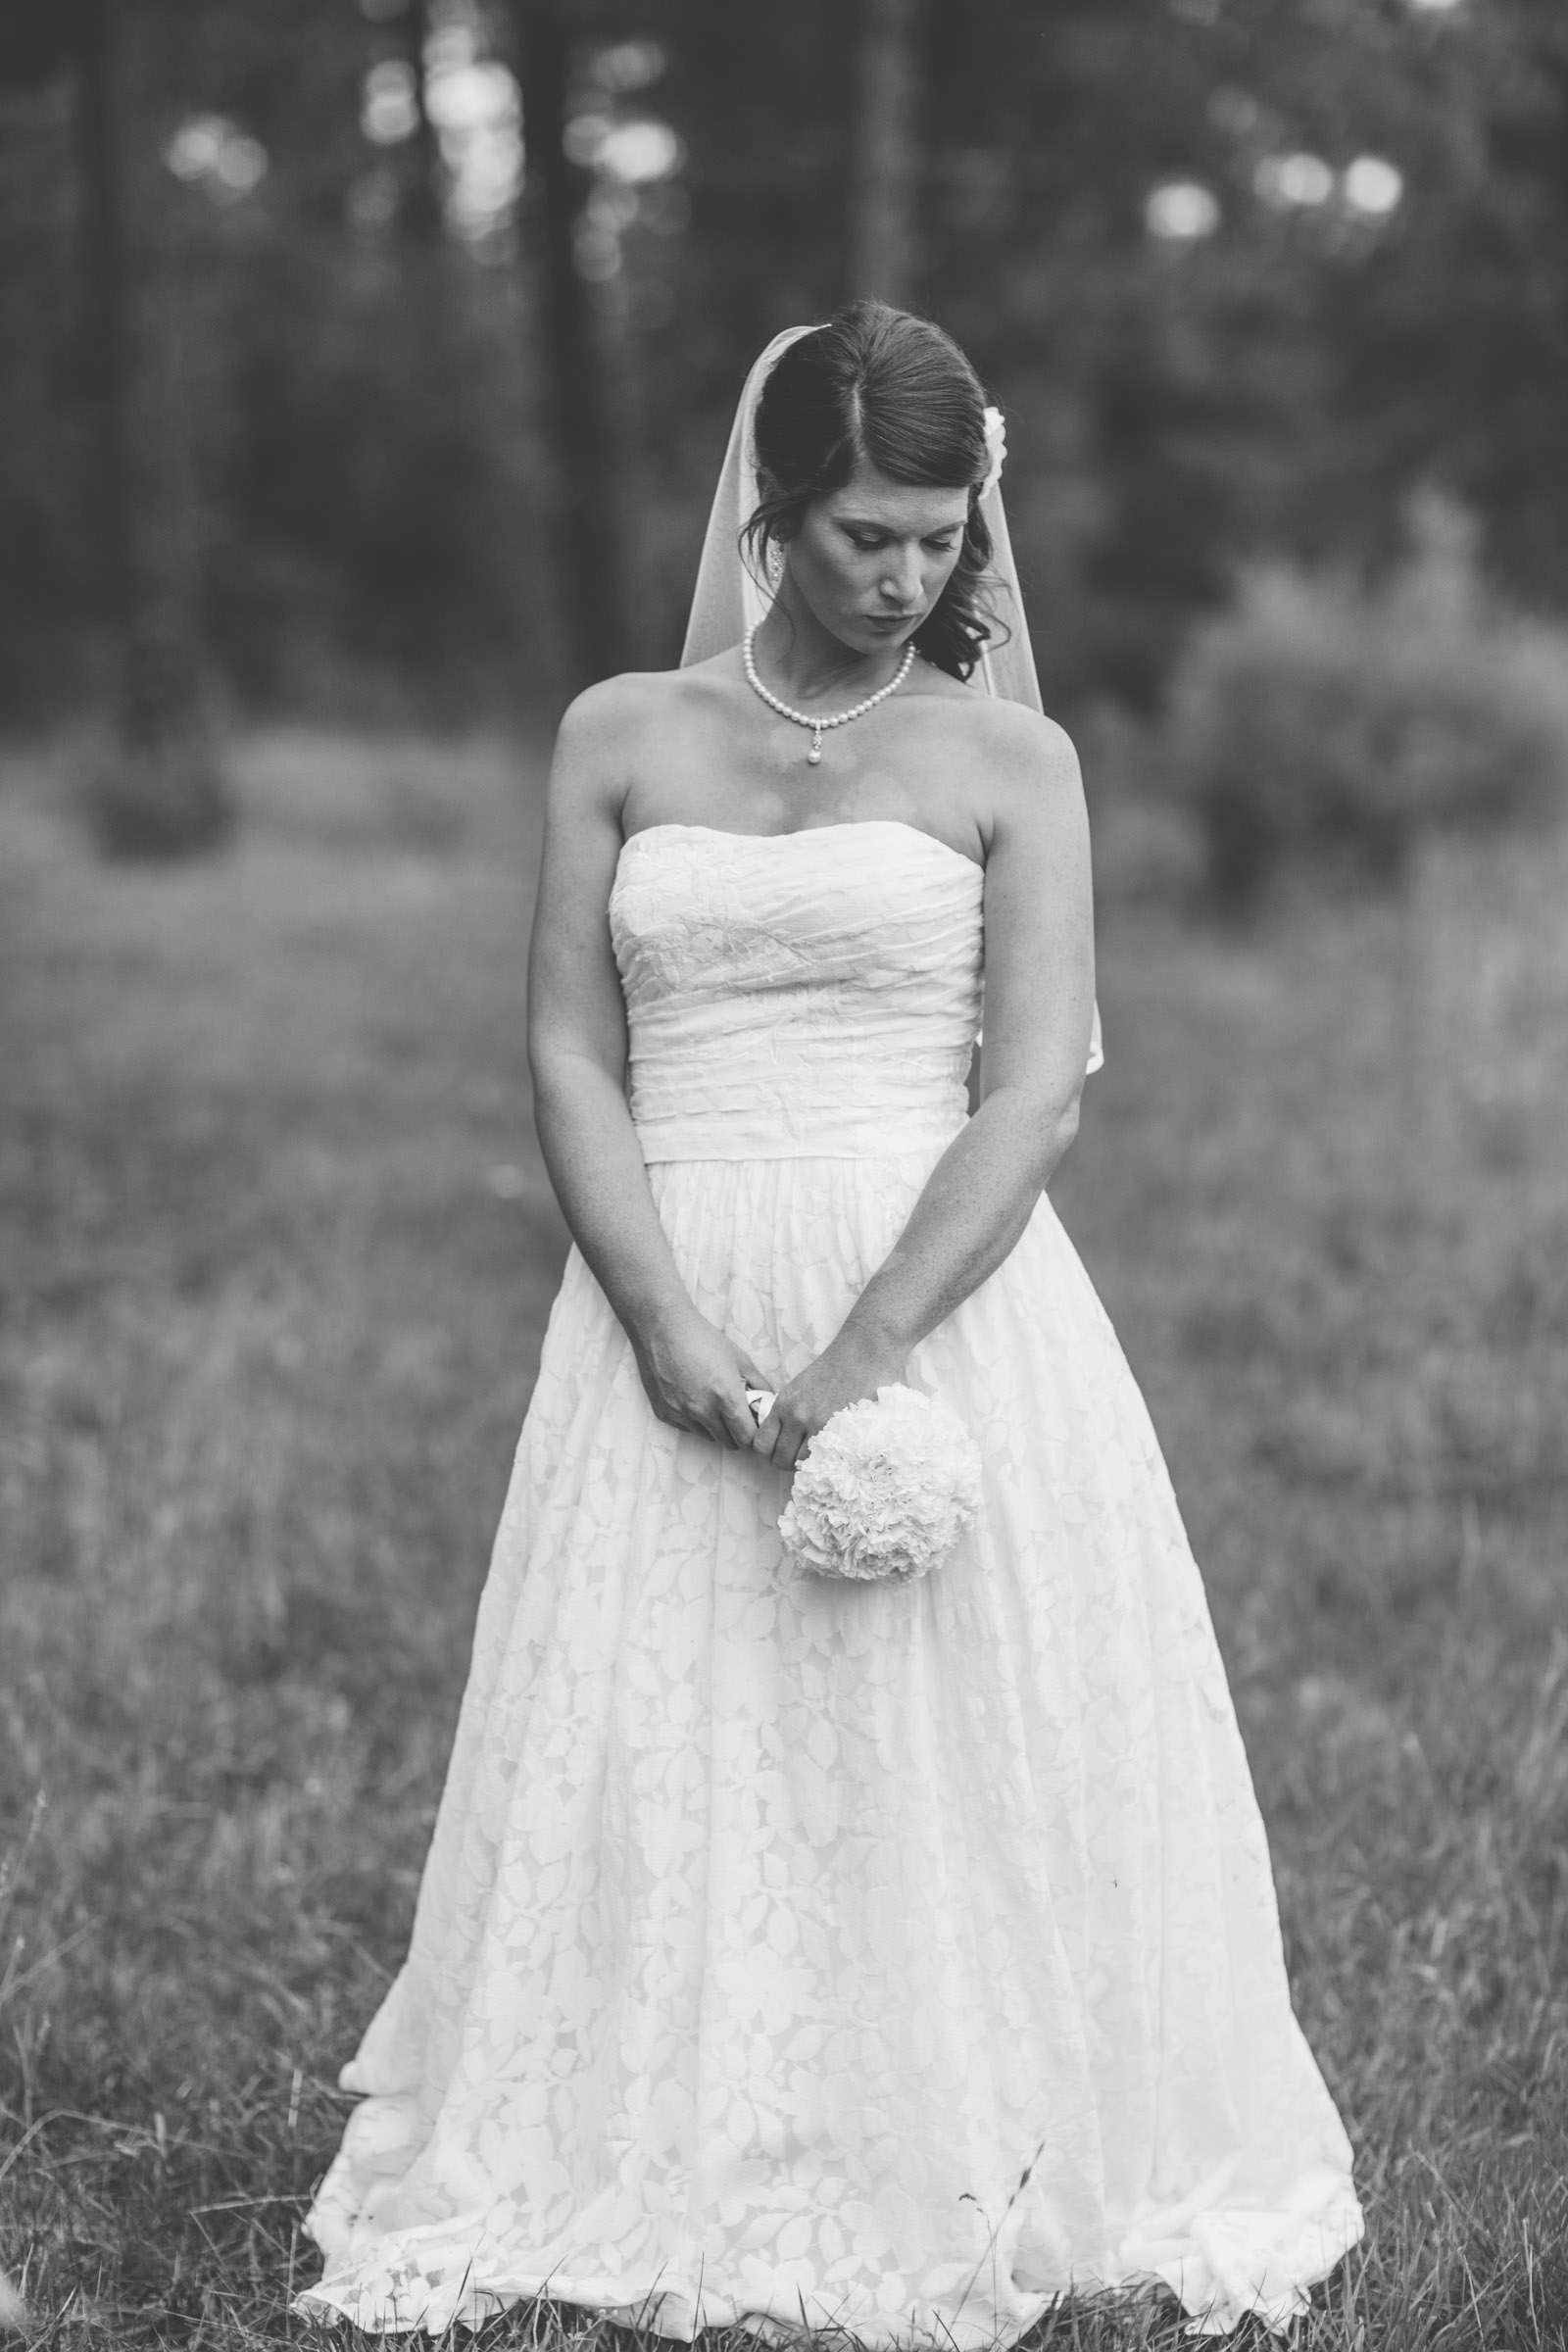 047-bride-wedding-wooden-woods-forest-pictures-photos-dress-photography-porttraits